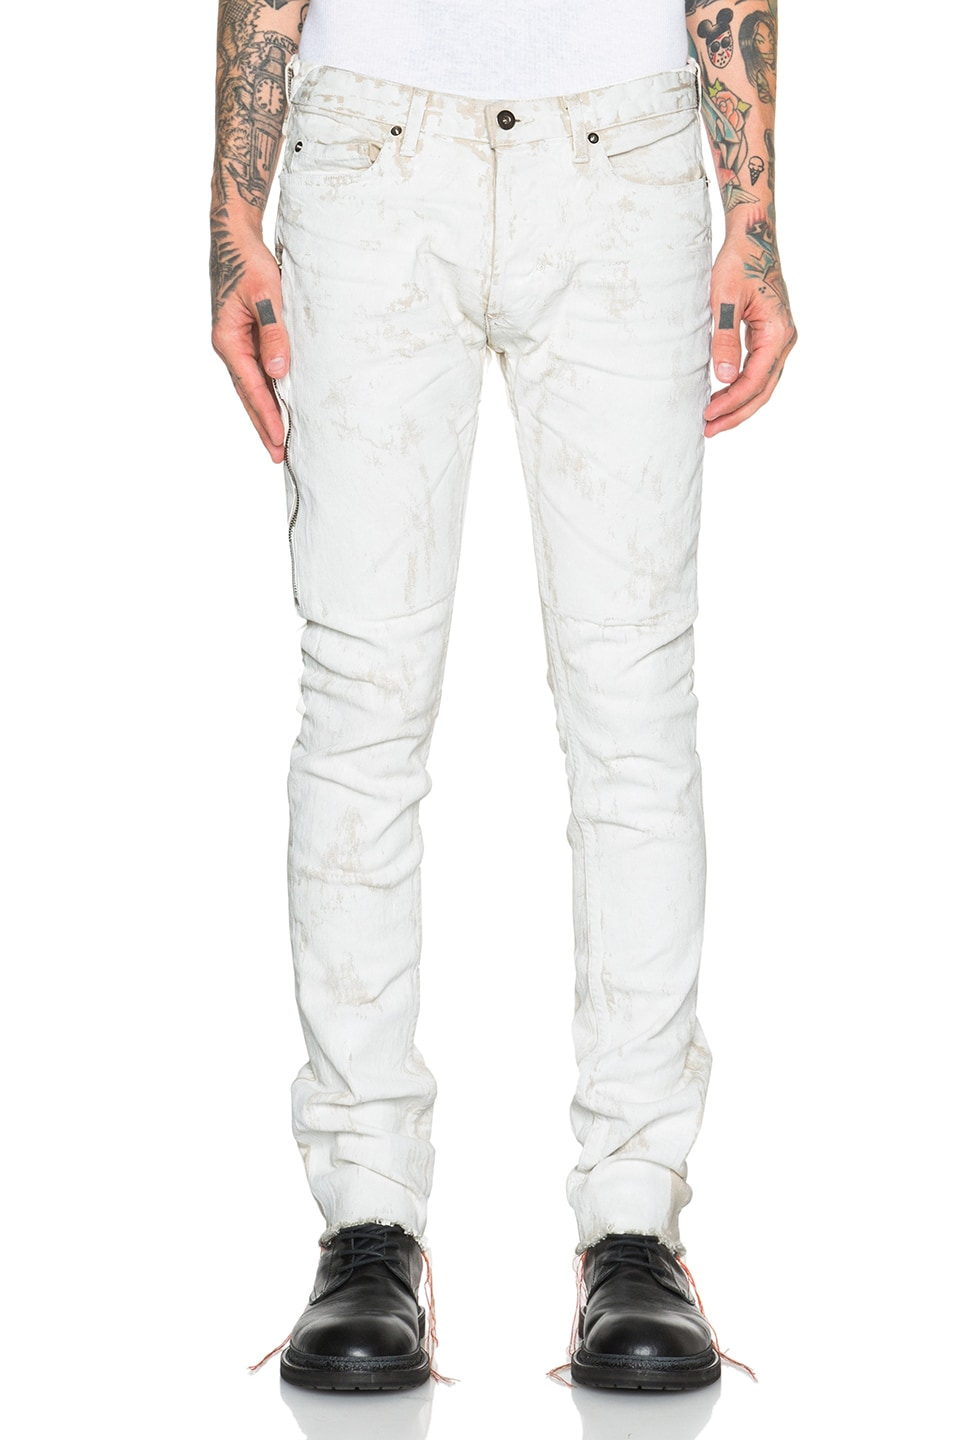 Image 1 of Mr. Completely White Jeans in White Clay in White